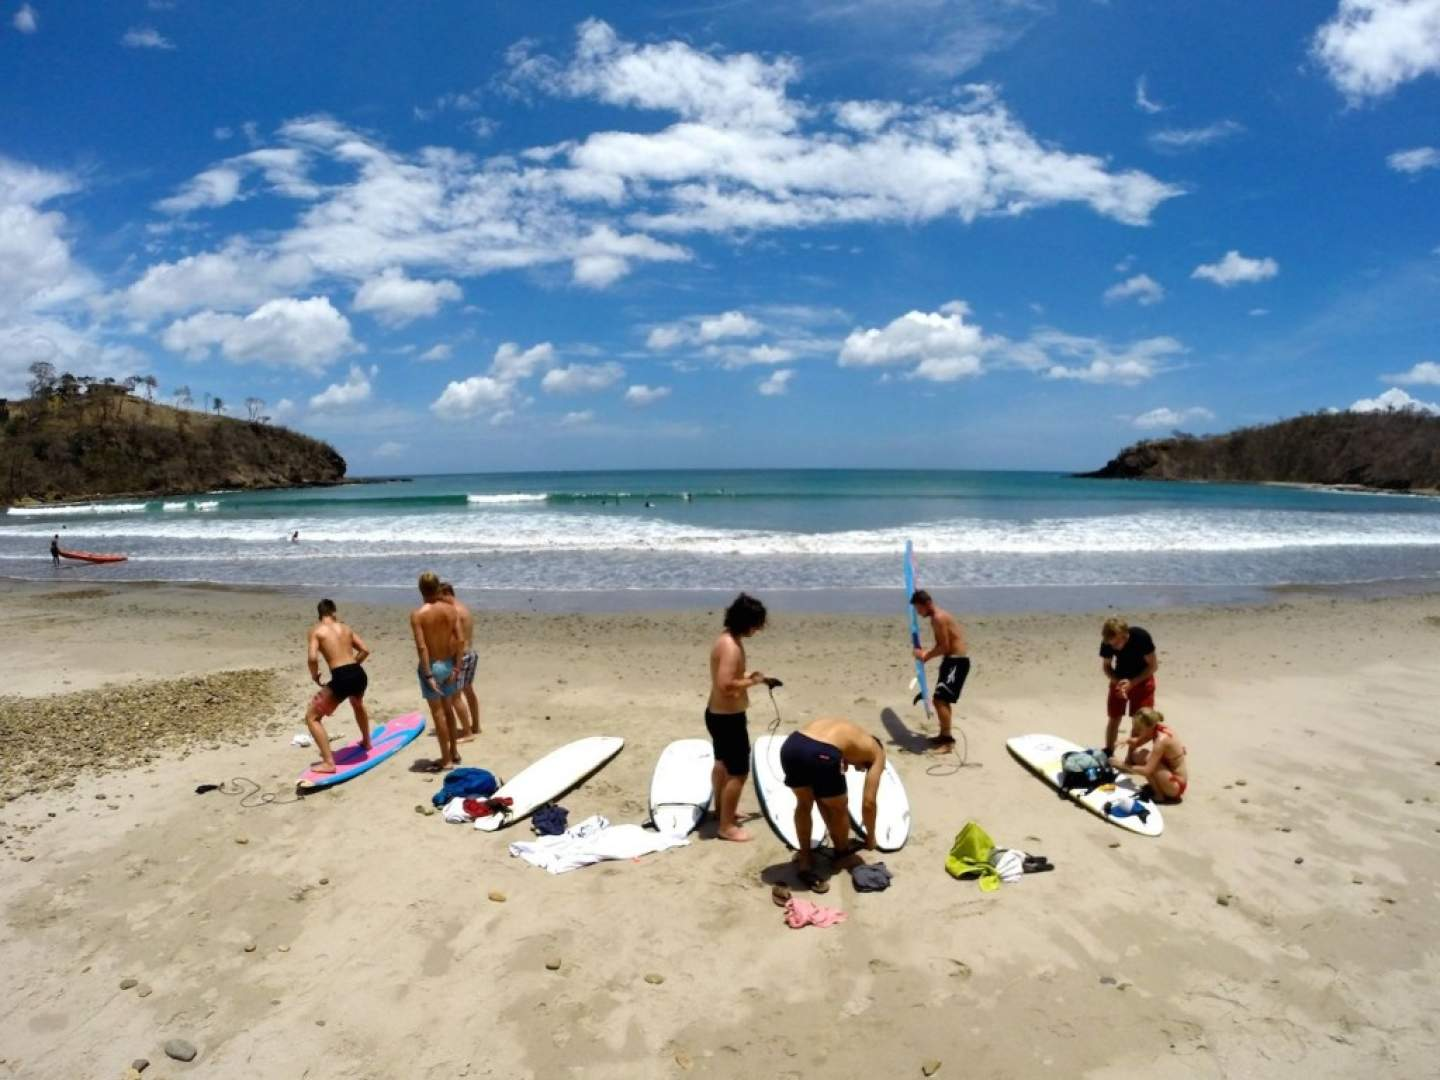 Remanso Beach Is A 15minute Drive From San Juan Del Sur And The Perfect Spot To Head For Natural Scenic Beauty Quiet Waves